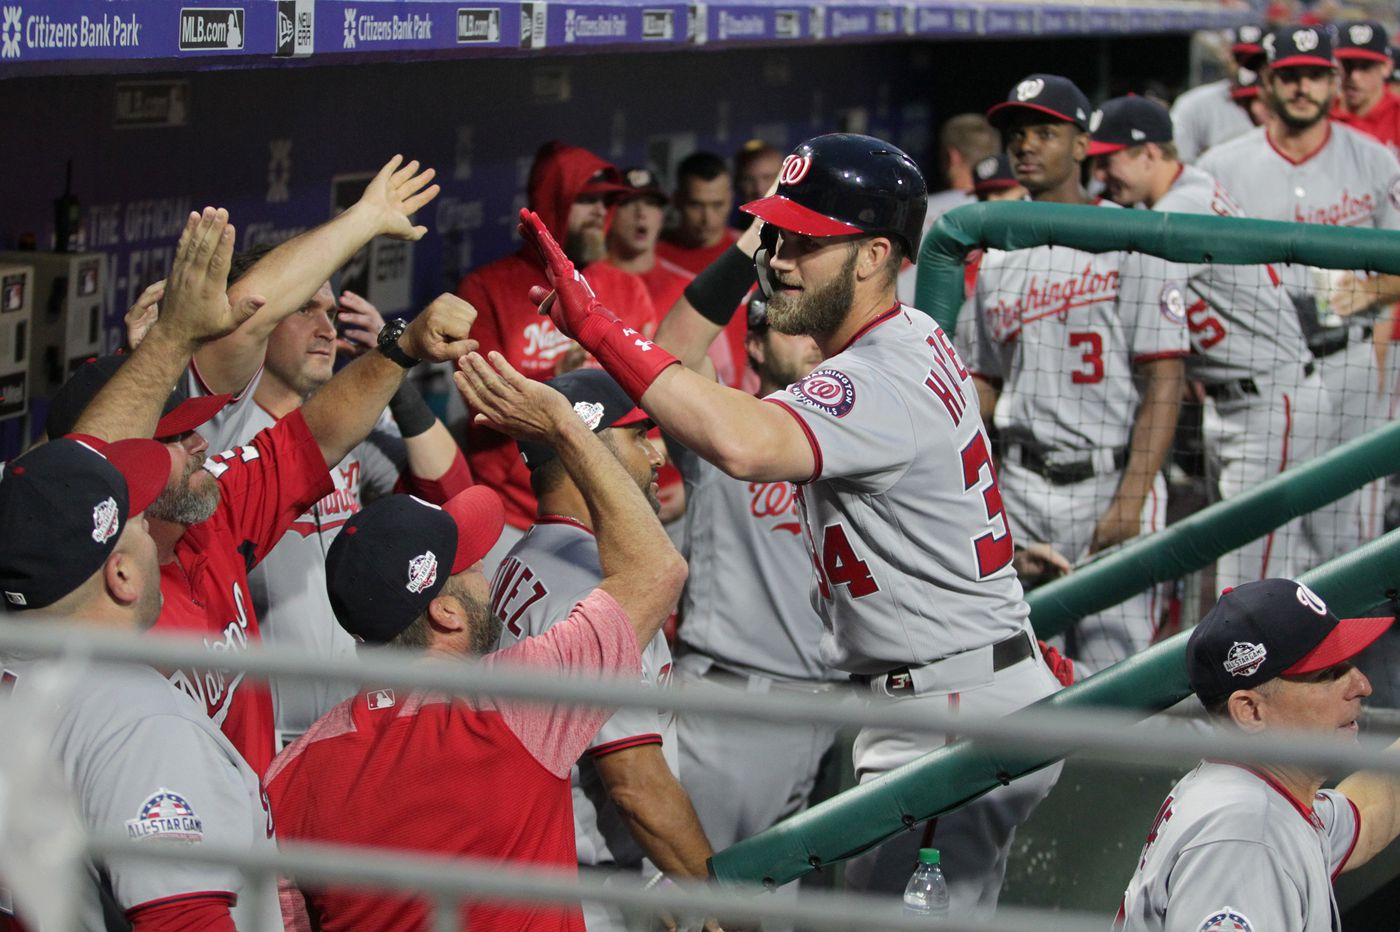 Phillies' owner John Middleton flies to Las Vegas to meet with Bryce Harper and team's confidence grows